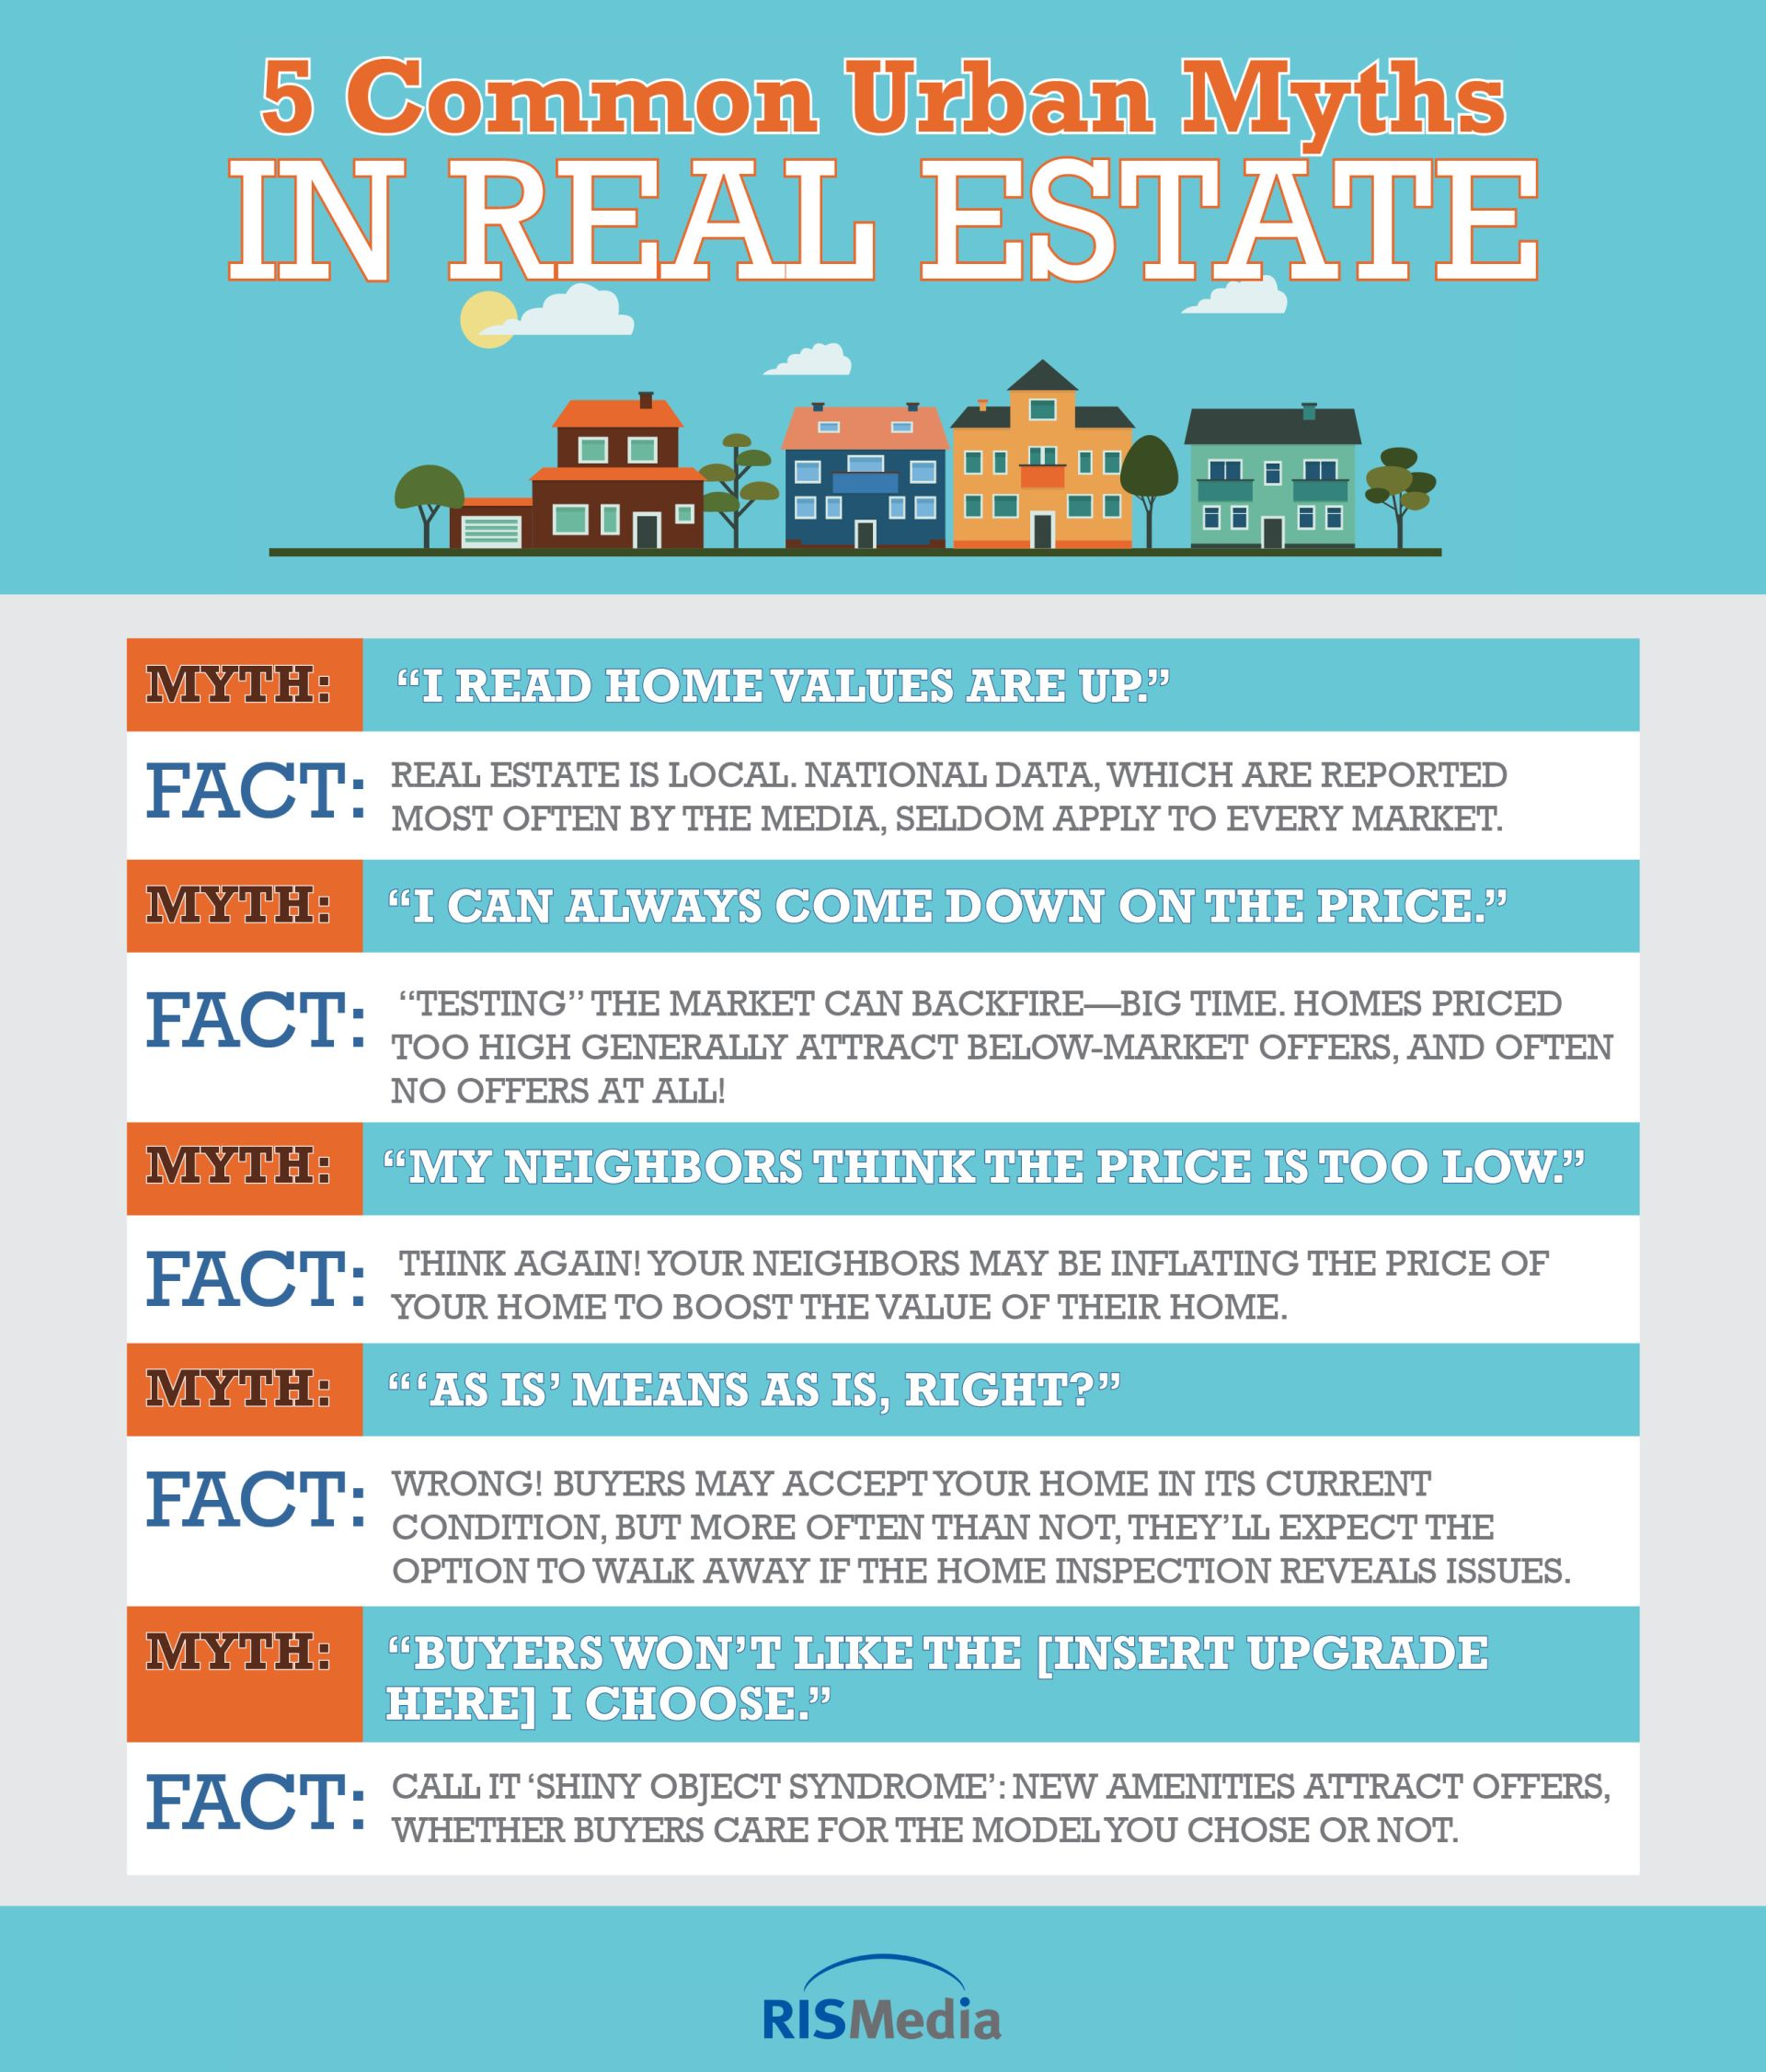 5 Common Urban Myths in Real Estate